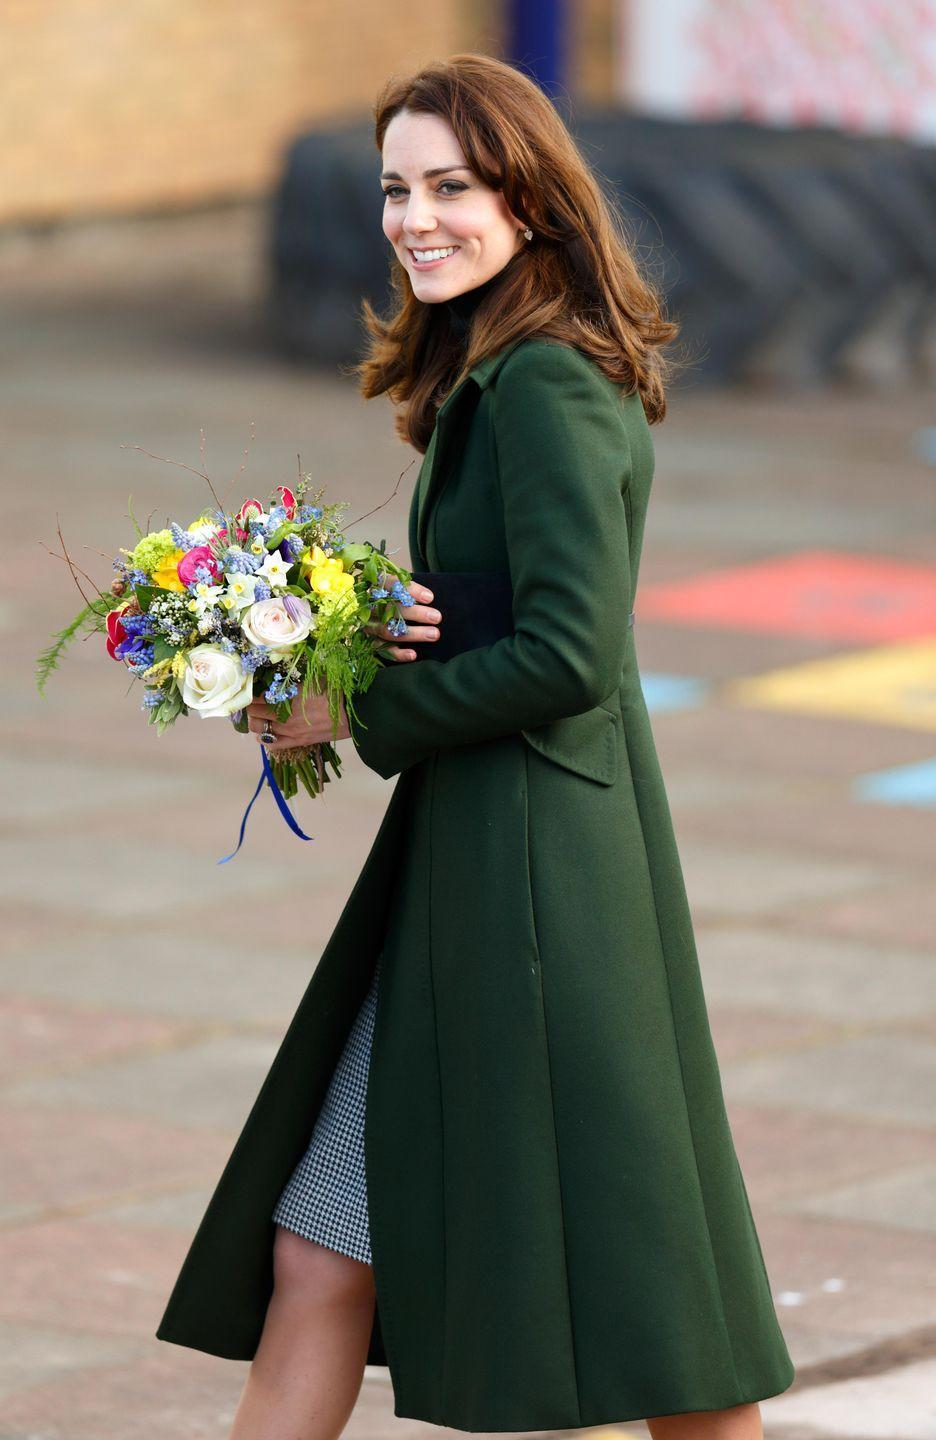 <p>Kate visited St. Catherine's Primary School in Edinburgh as part of her work with the charity Place2Be, of which she is a patron.</p>